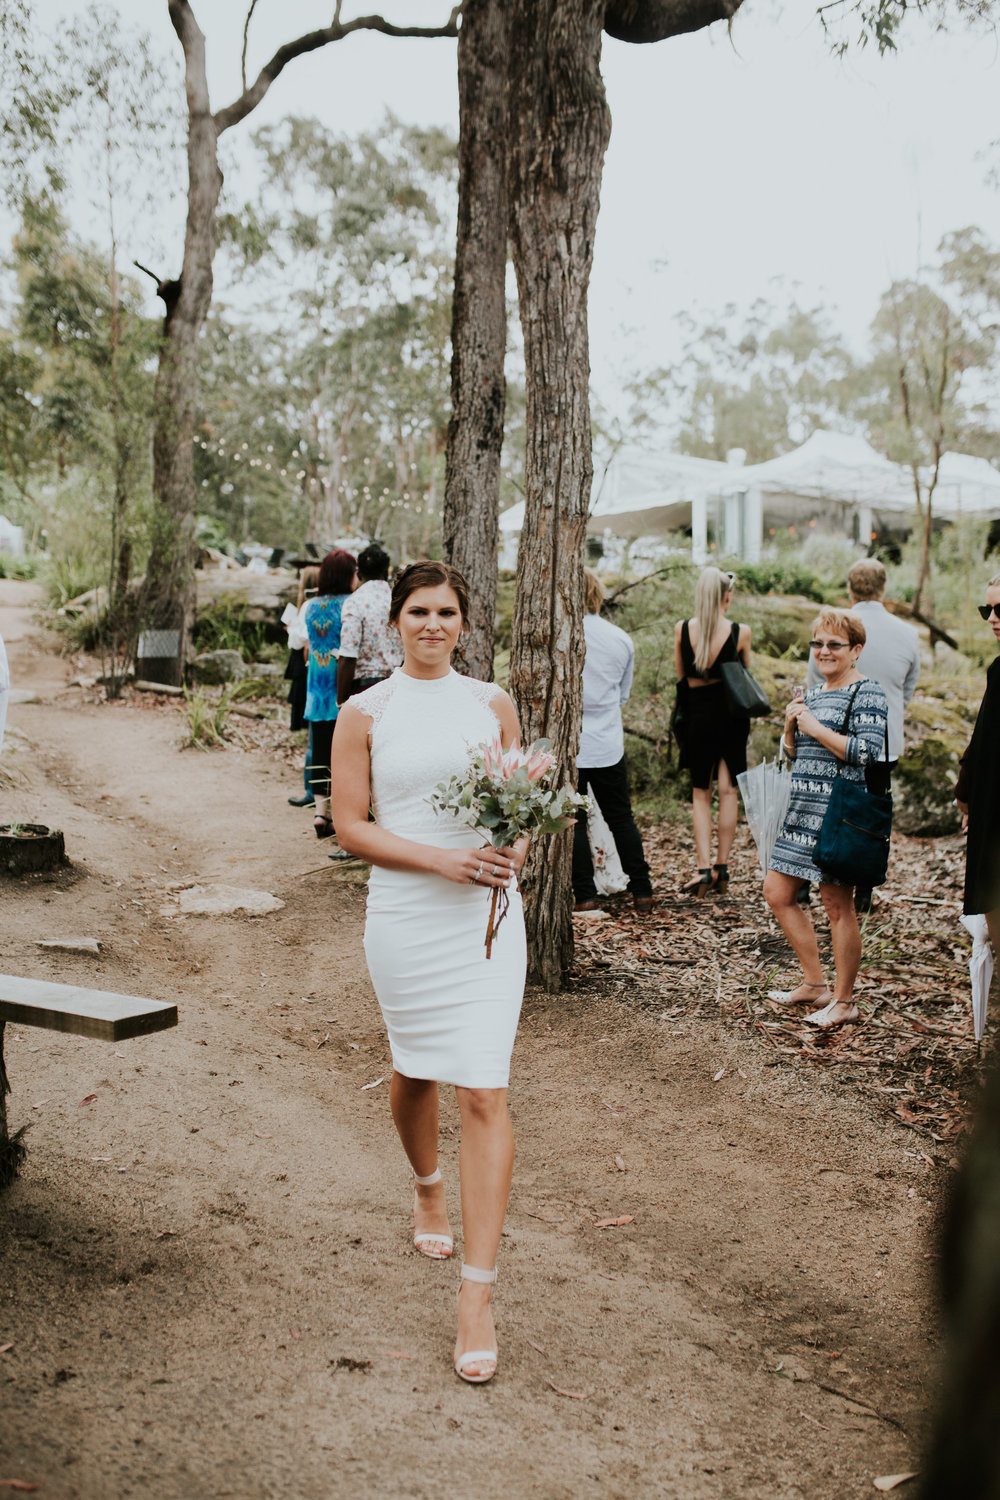 Jesse+Matt+Kangaroo+Valley+Wildwood+Boho+Relaxed+wedding+-93.jpg